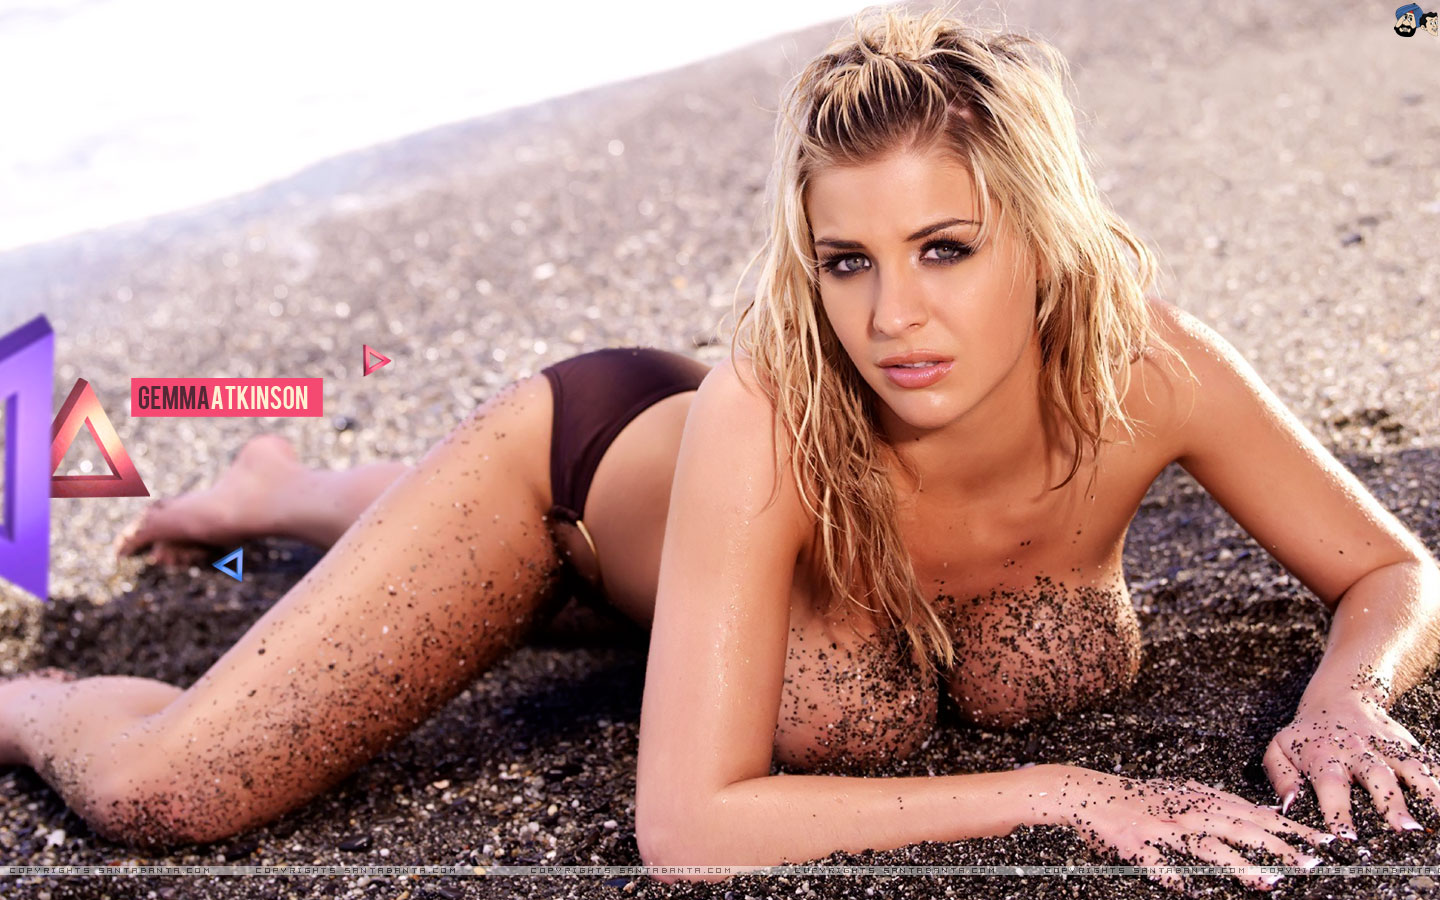 Santa Banta Car Wallpaper Hd Wallpaper Gemma Atkinson